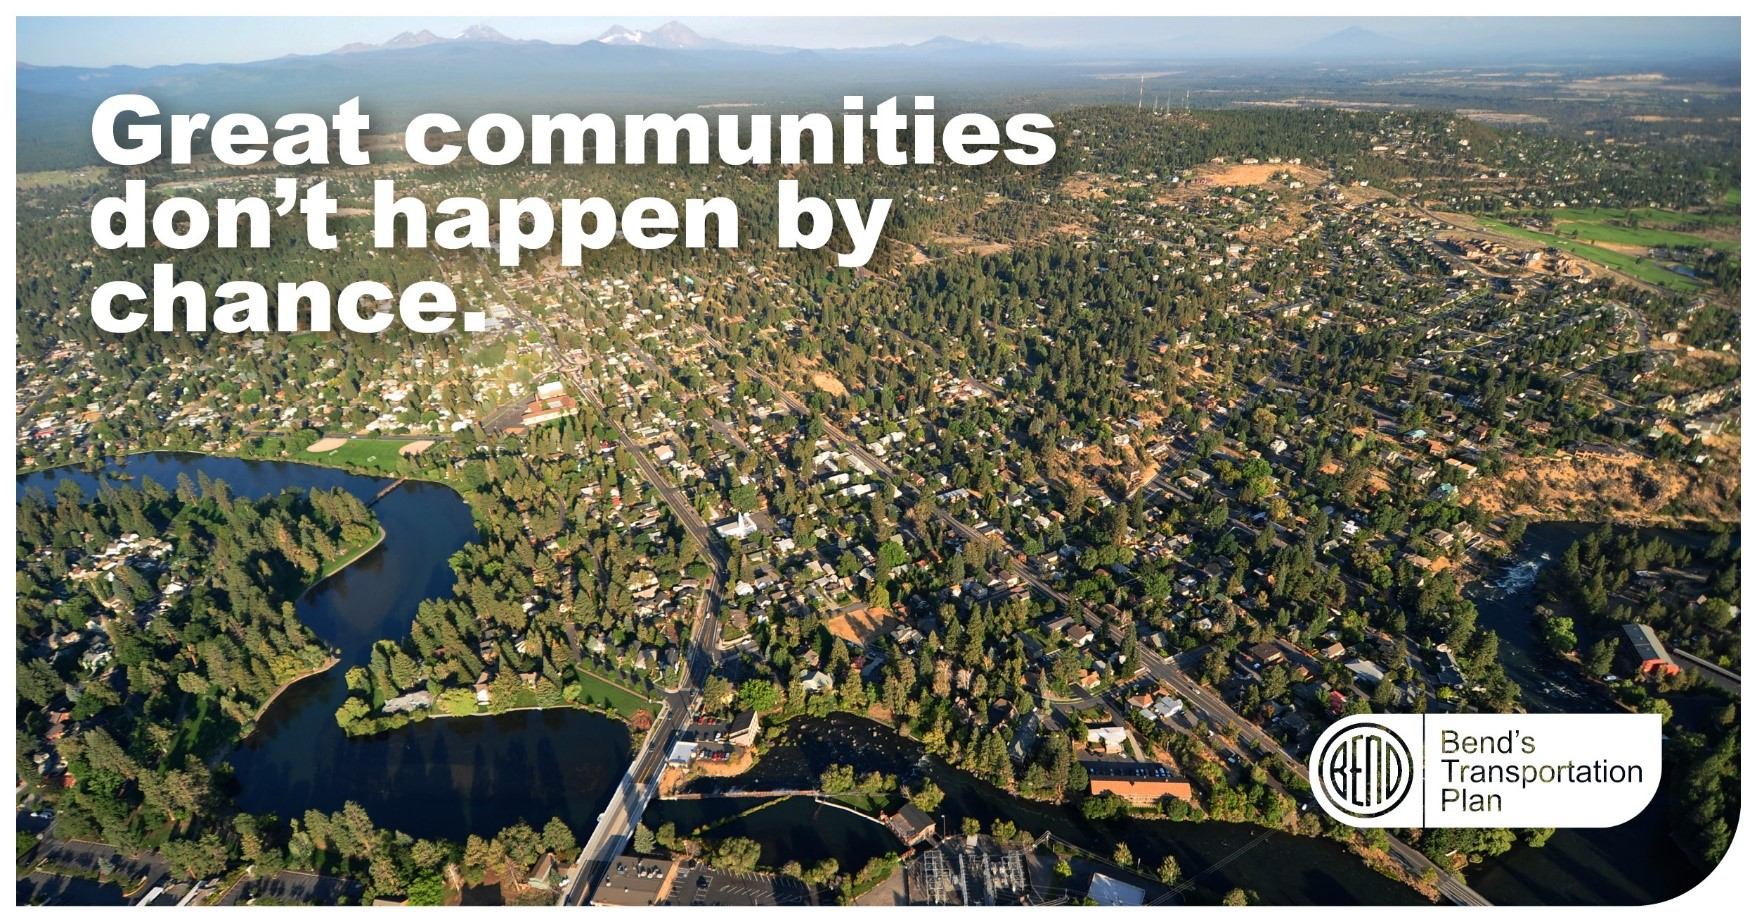 Aerial photo of Bend with Great communities don't happen by chance text over the top.